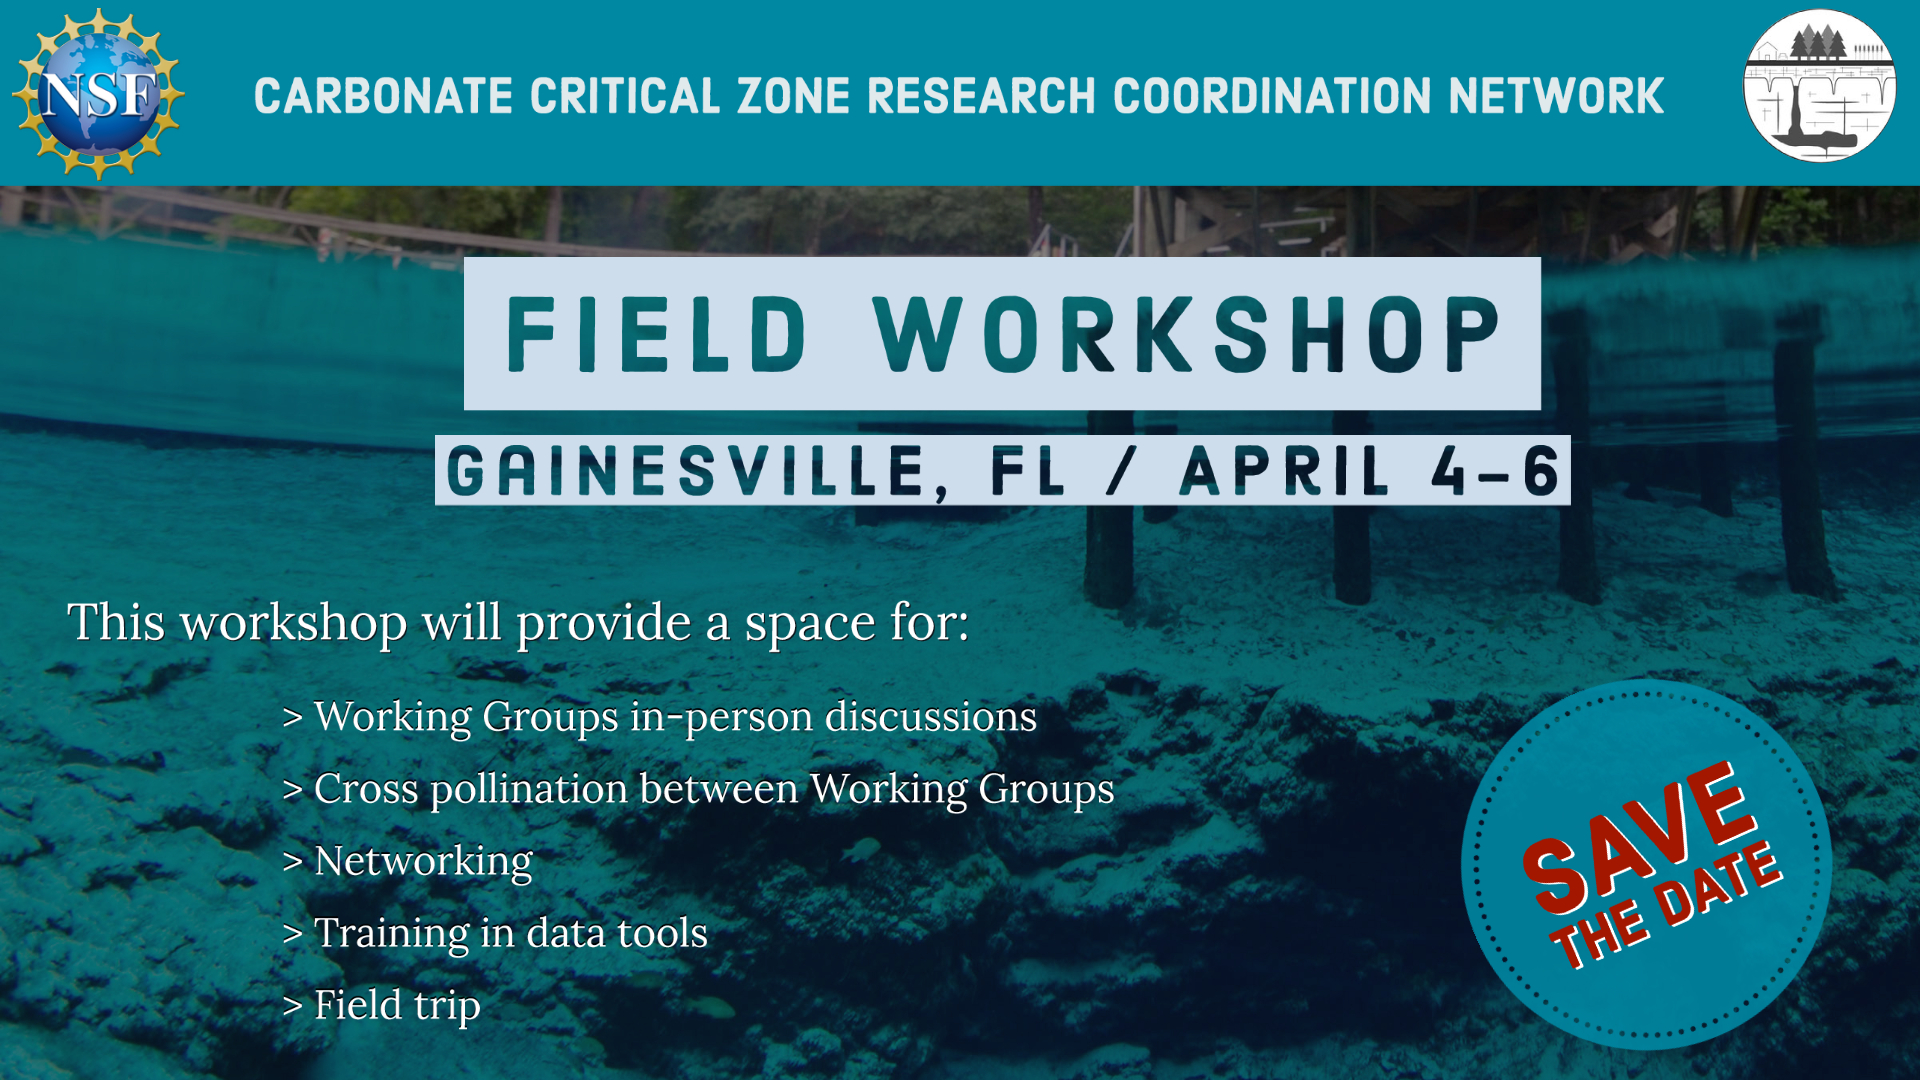 Save the date for the Field Workshop in Gainesville, FL on April 4-6, 2022. Workshop will provide space for Working Group in person discussions, cross pollinations between Working Groups, networking, Training in data tools and a field trip